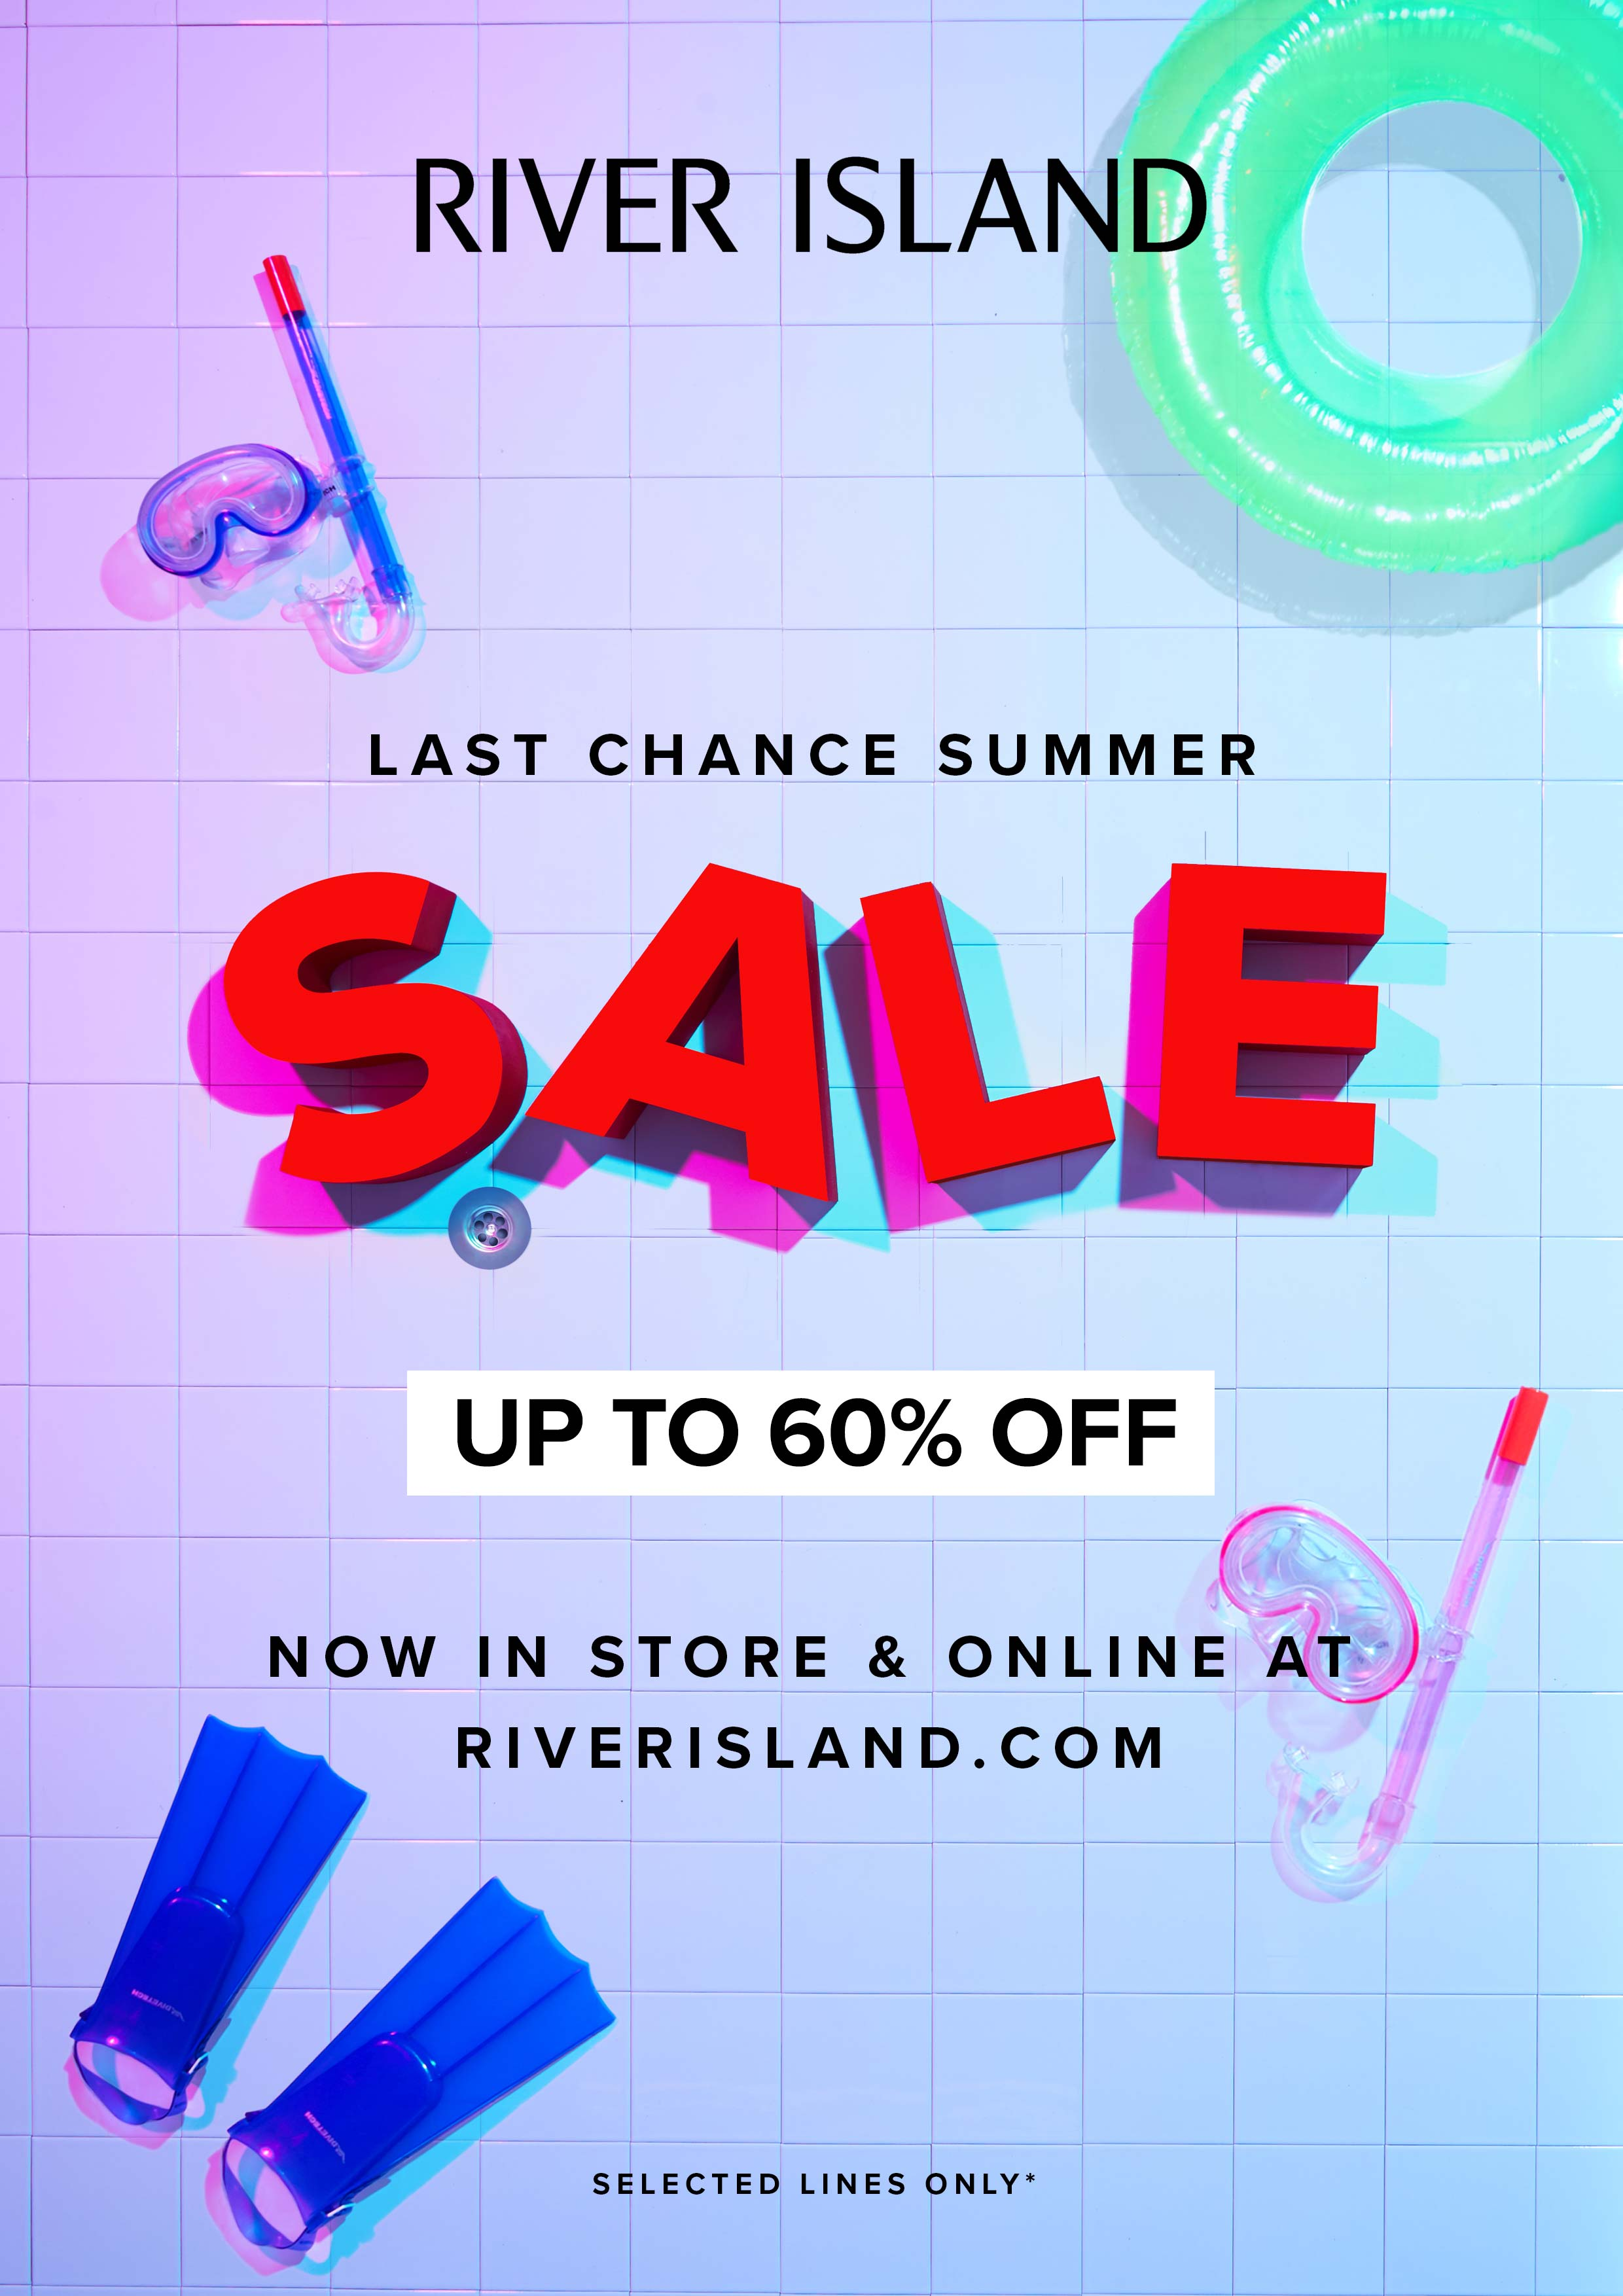 Up to 60% OFF in River Island